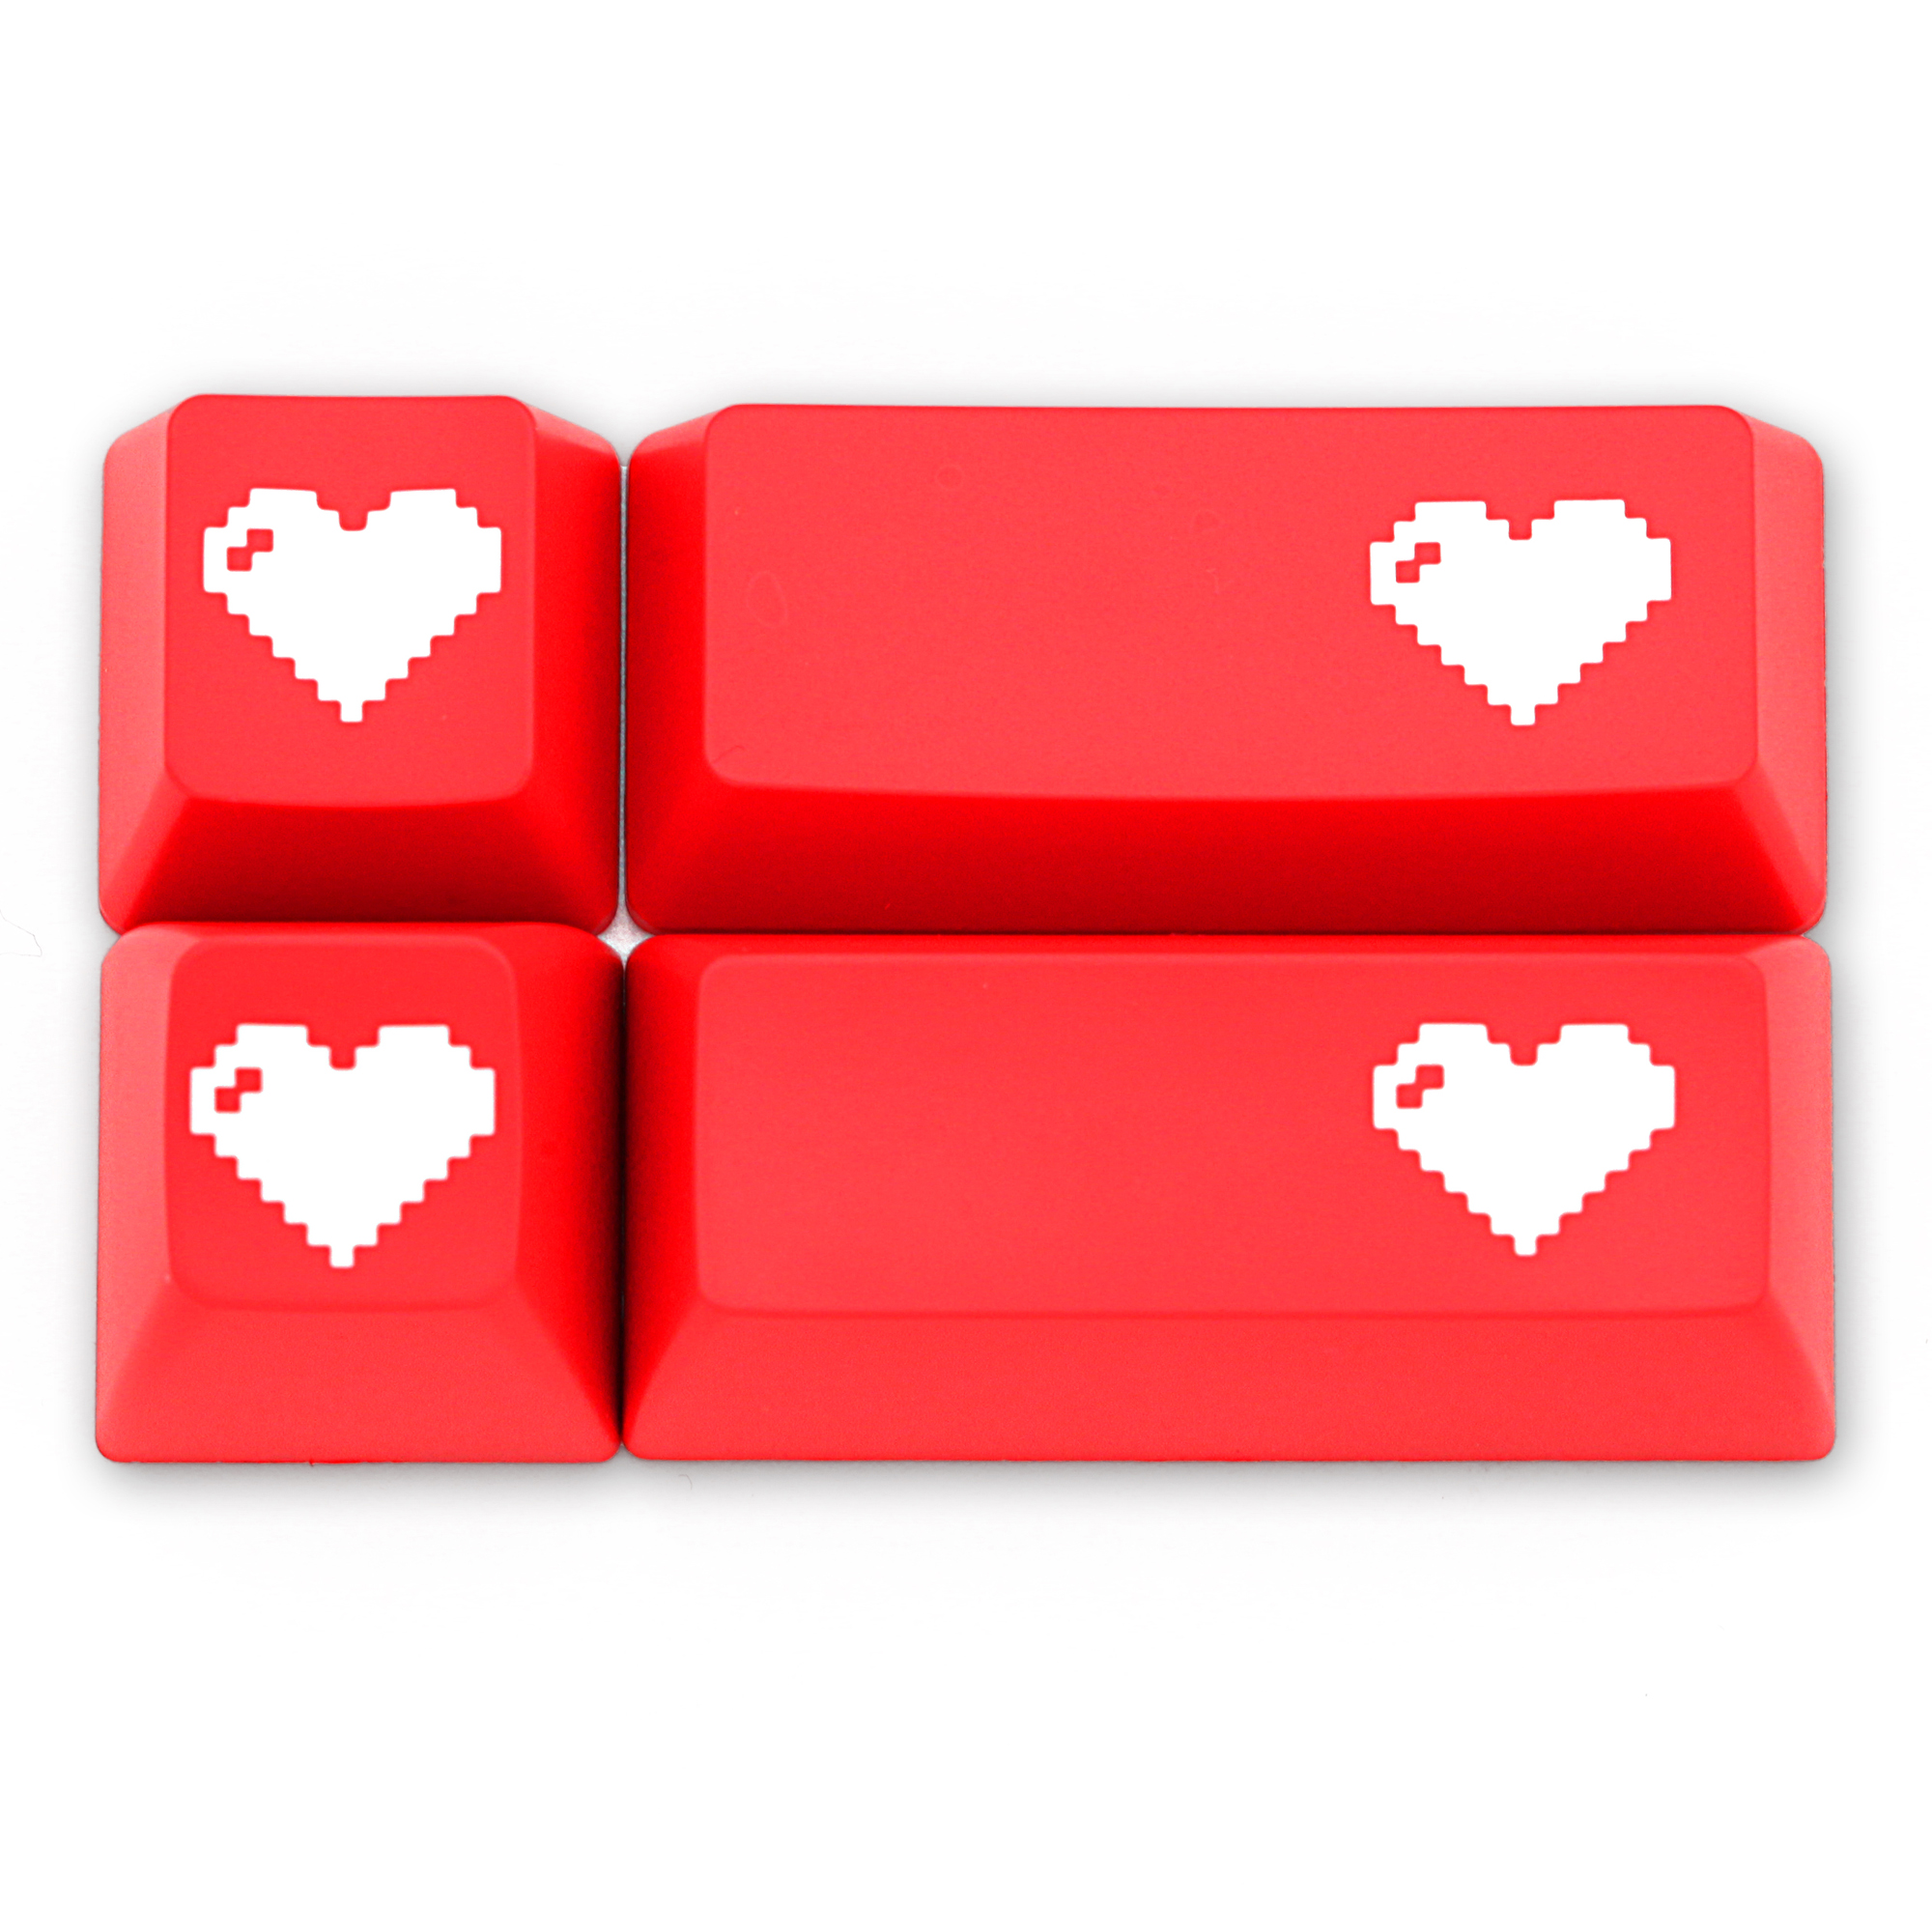 Domikey SA Abs Doubleshot Keycap Pixel Heart Red For Oem Dsa Sa Cherry Profile Poker 87 104 Gh60 Xd64 Xd68 Xd84 Xd96 Xd75 Xd87